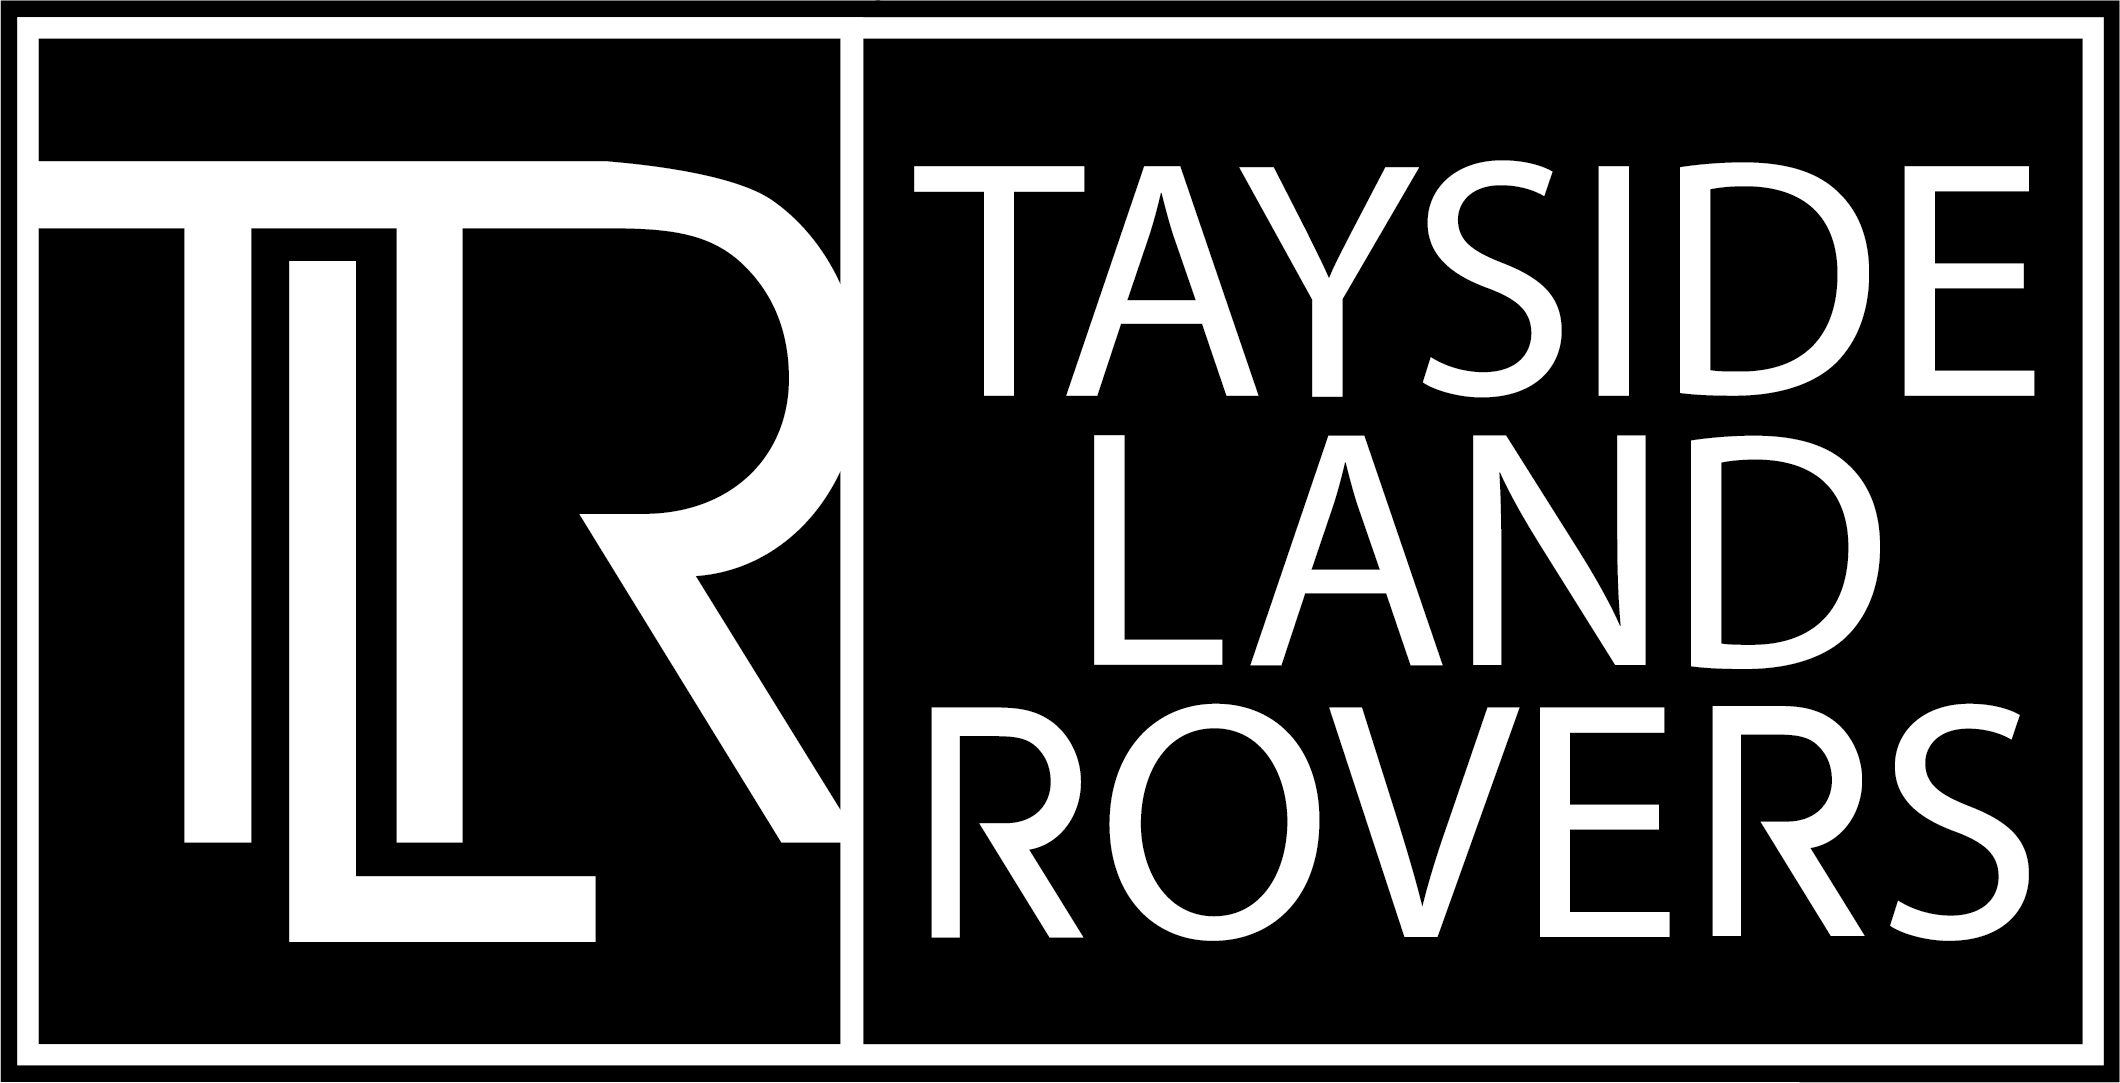 Tayside Land Rovers